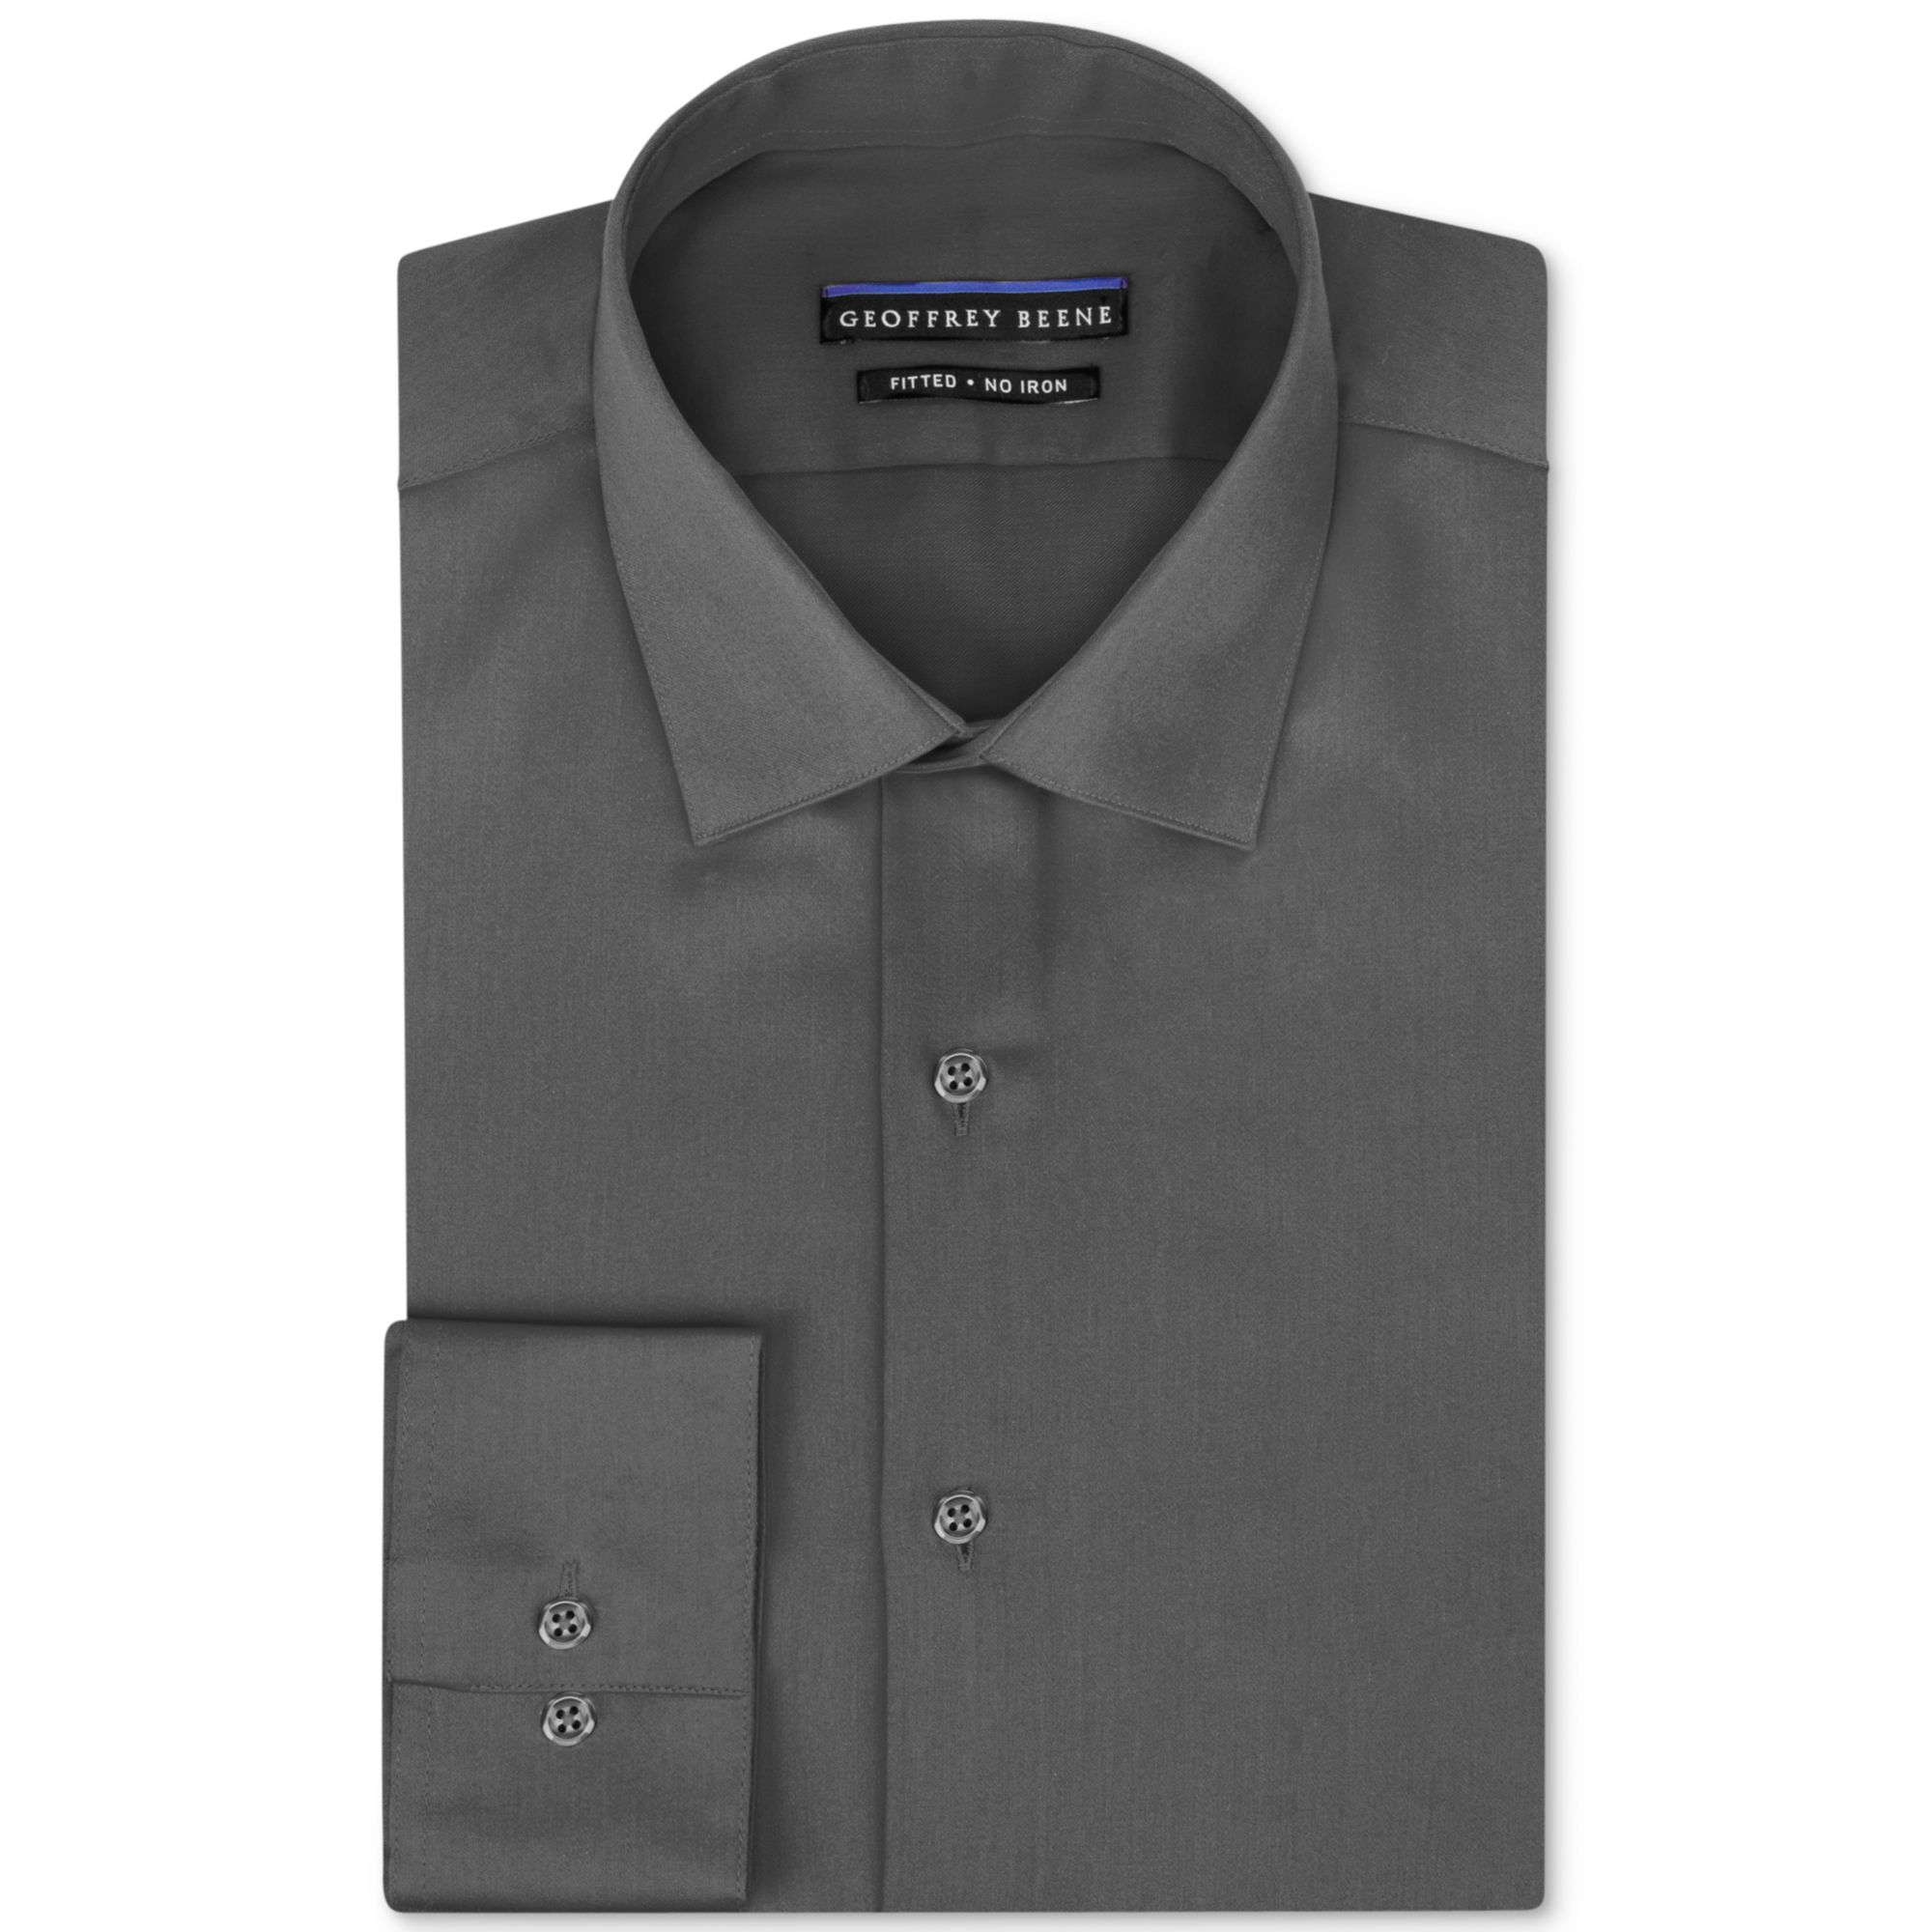 Geoffrey beene non iron fitted stretch sateen solid dress for No iron dress shirts for men